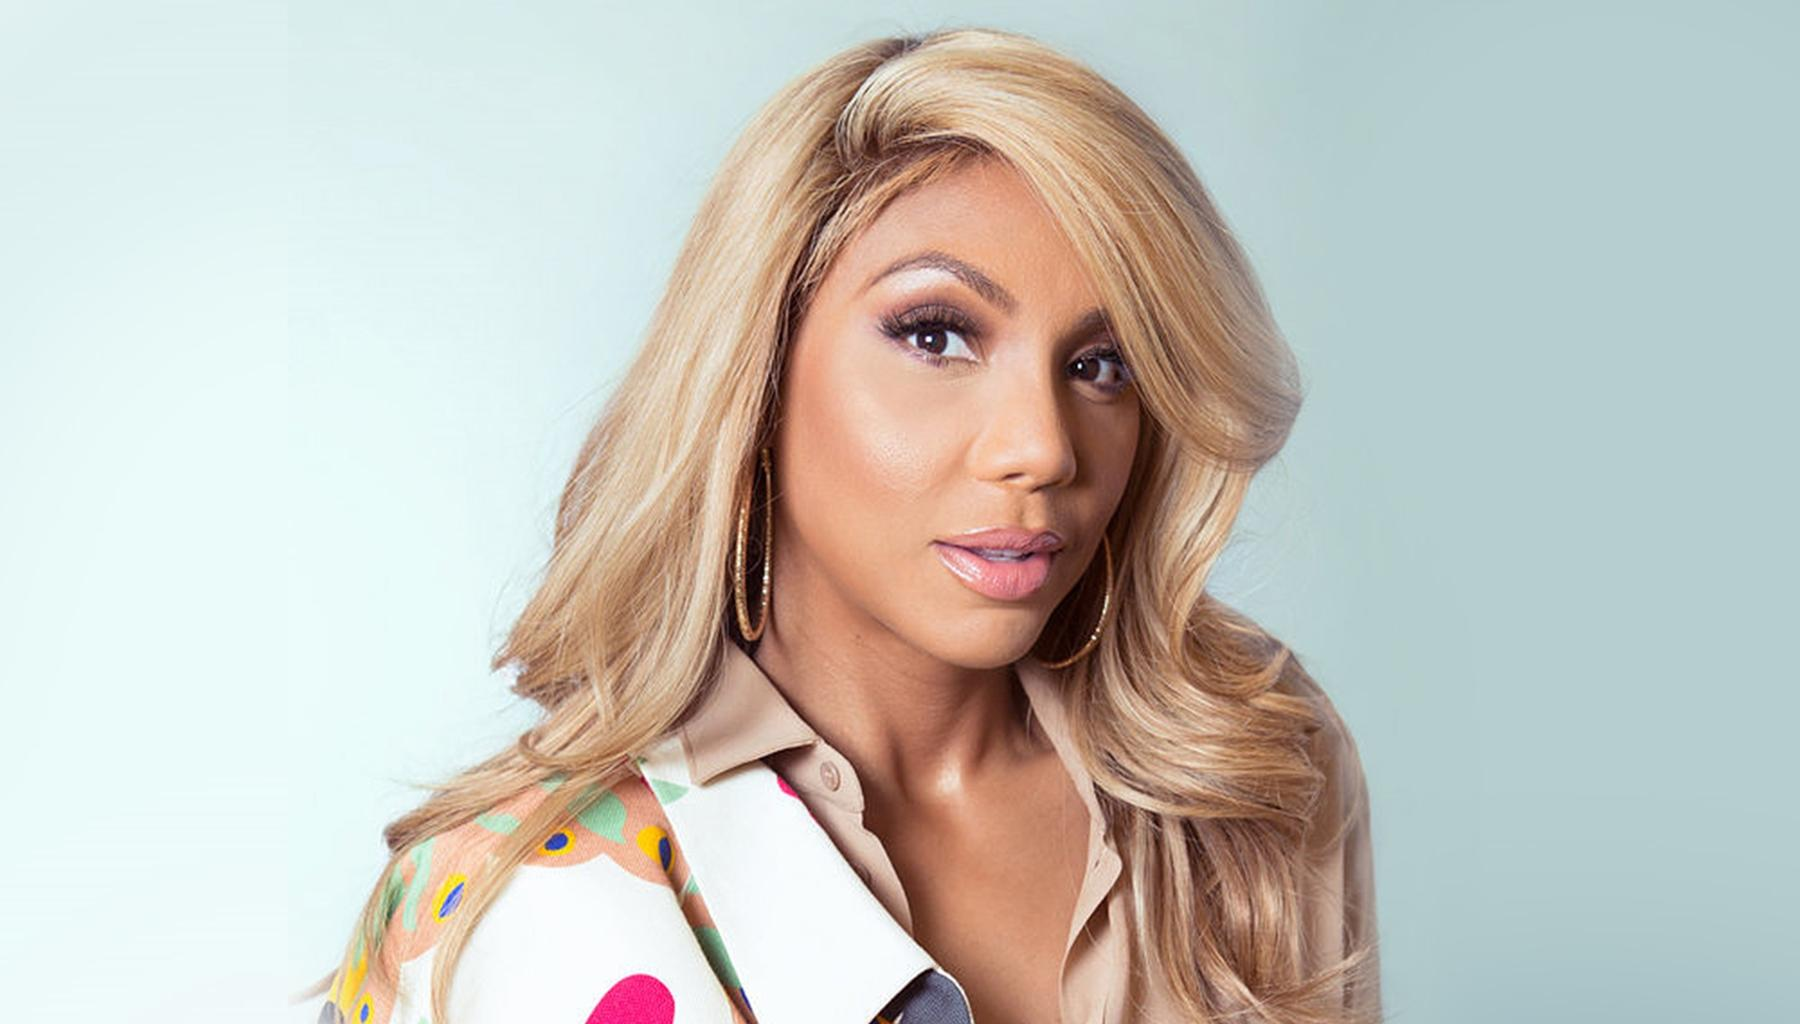 Tamar Braxton Shares First Video From The House In Celebrity Big Brother Ahead Of The Show's Launch